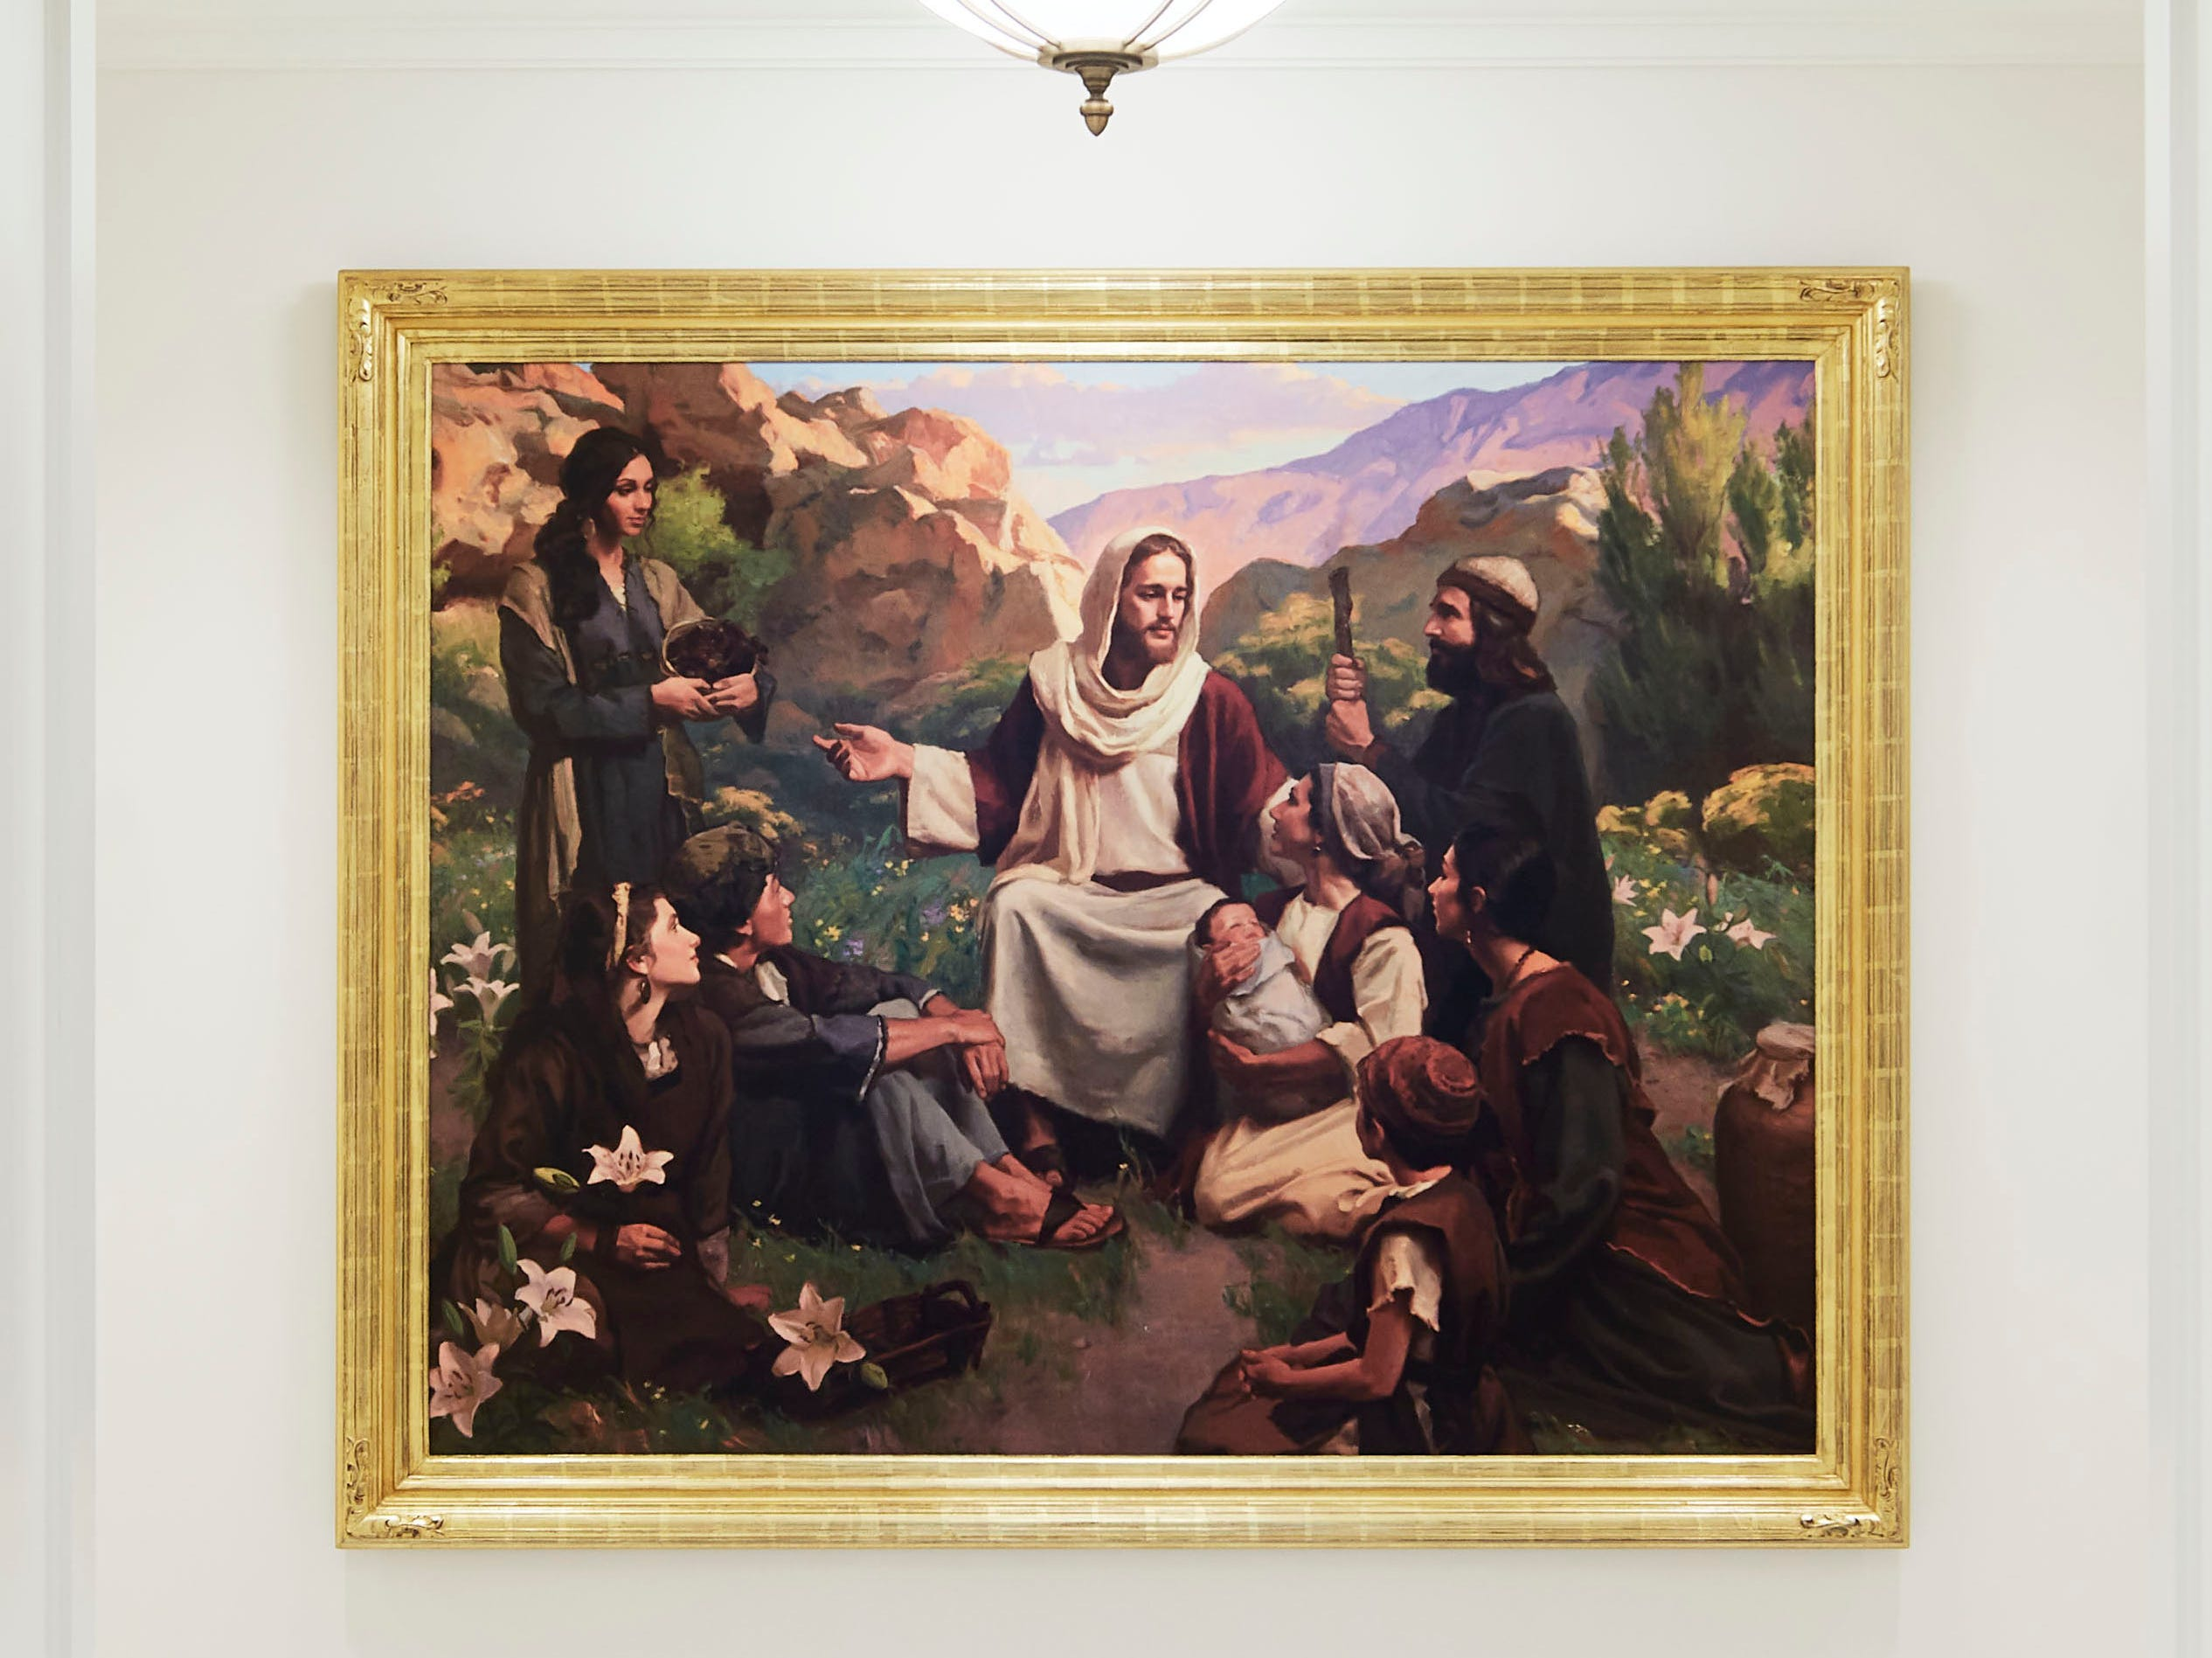 The Memphis Tennessee Temple features numerous paintings, many including depictions of Jesus.